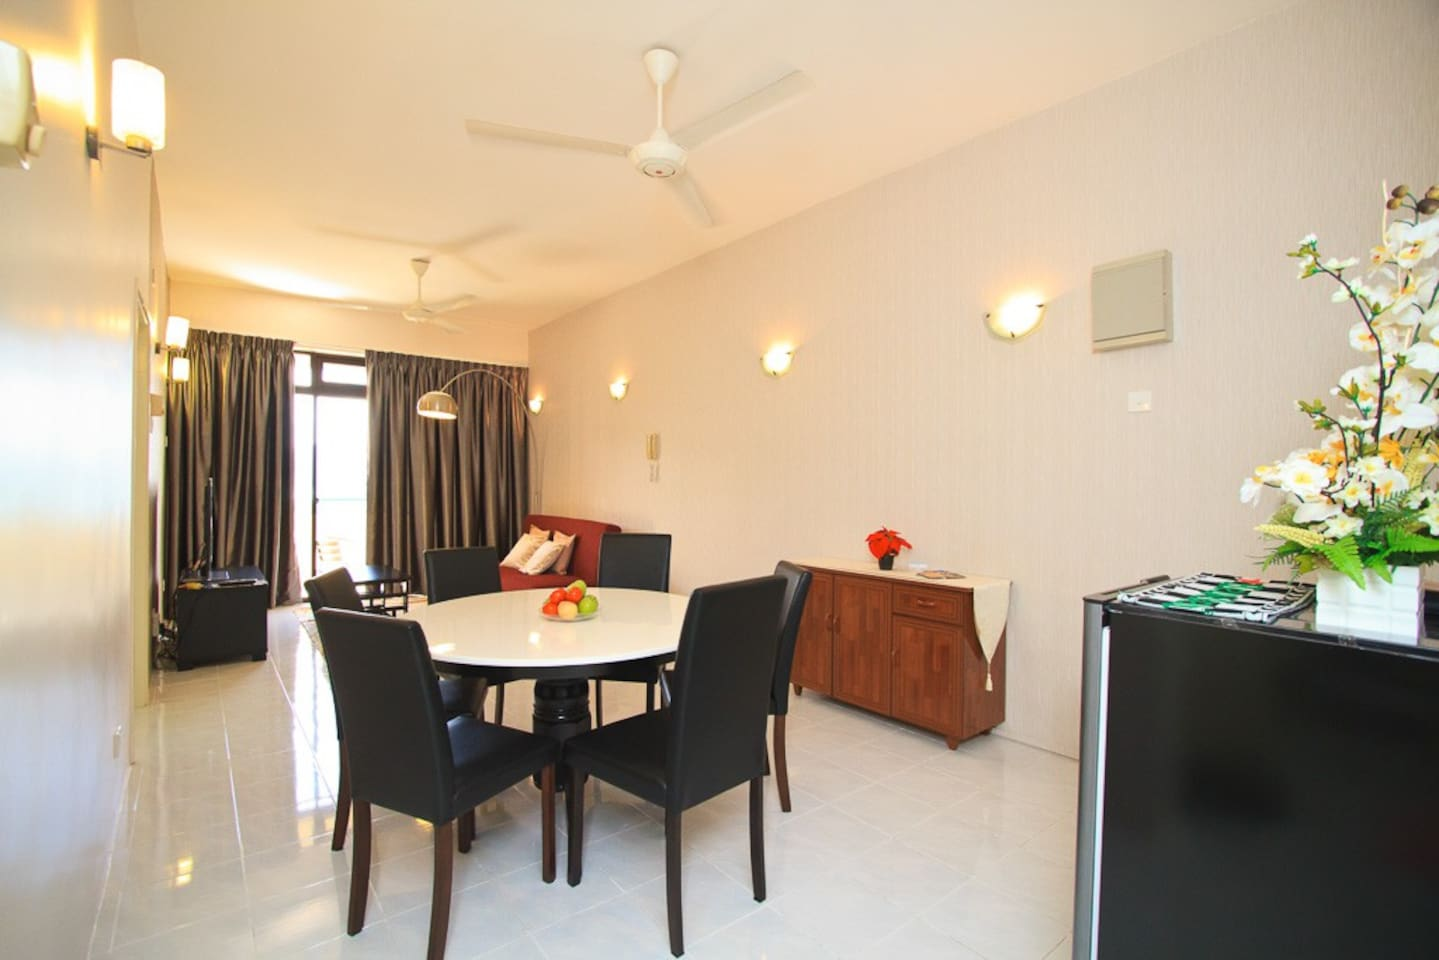 A warm and inviting living room for reading, watching TV or just sitting down at the dinning table enjoying meals